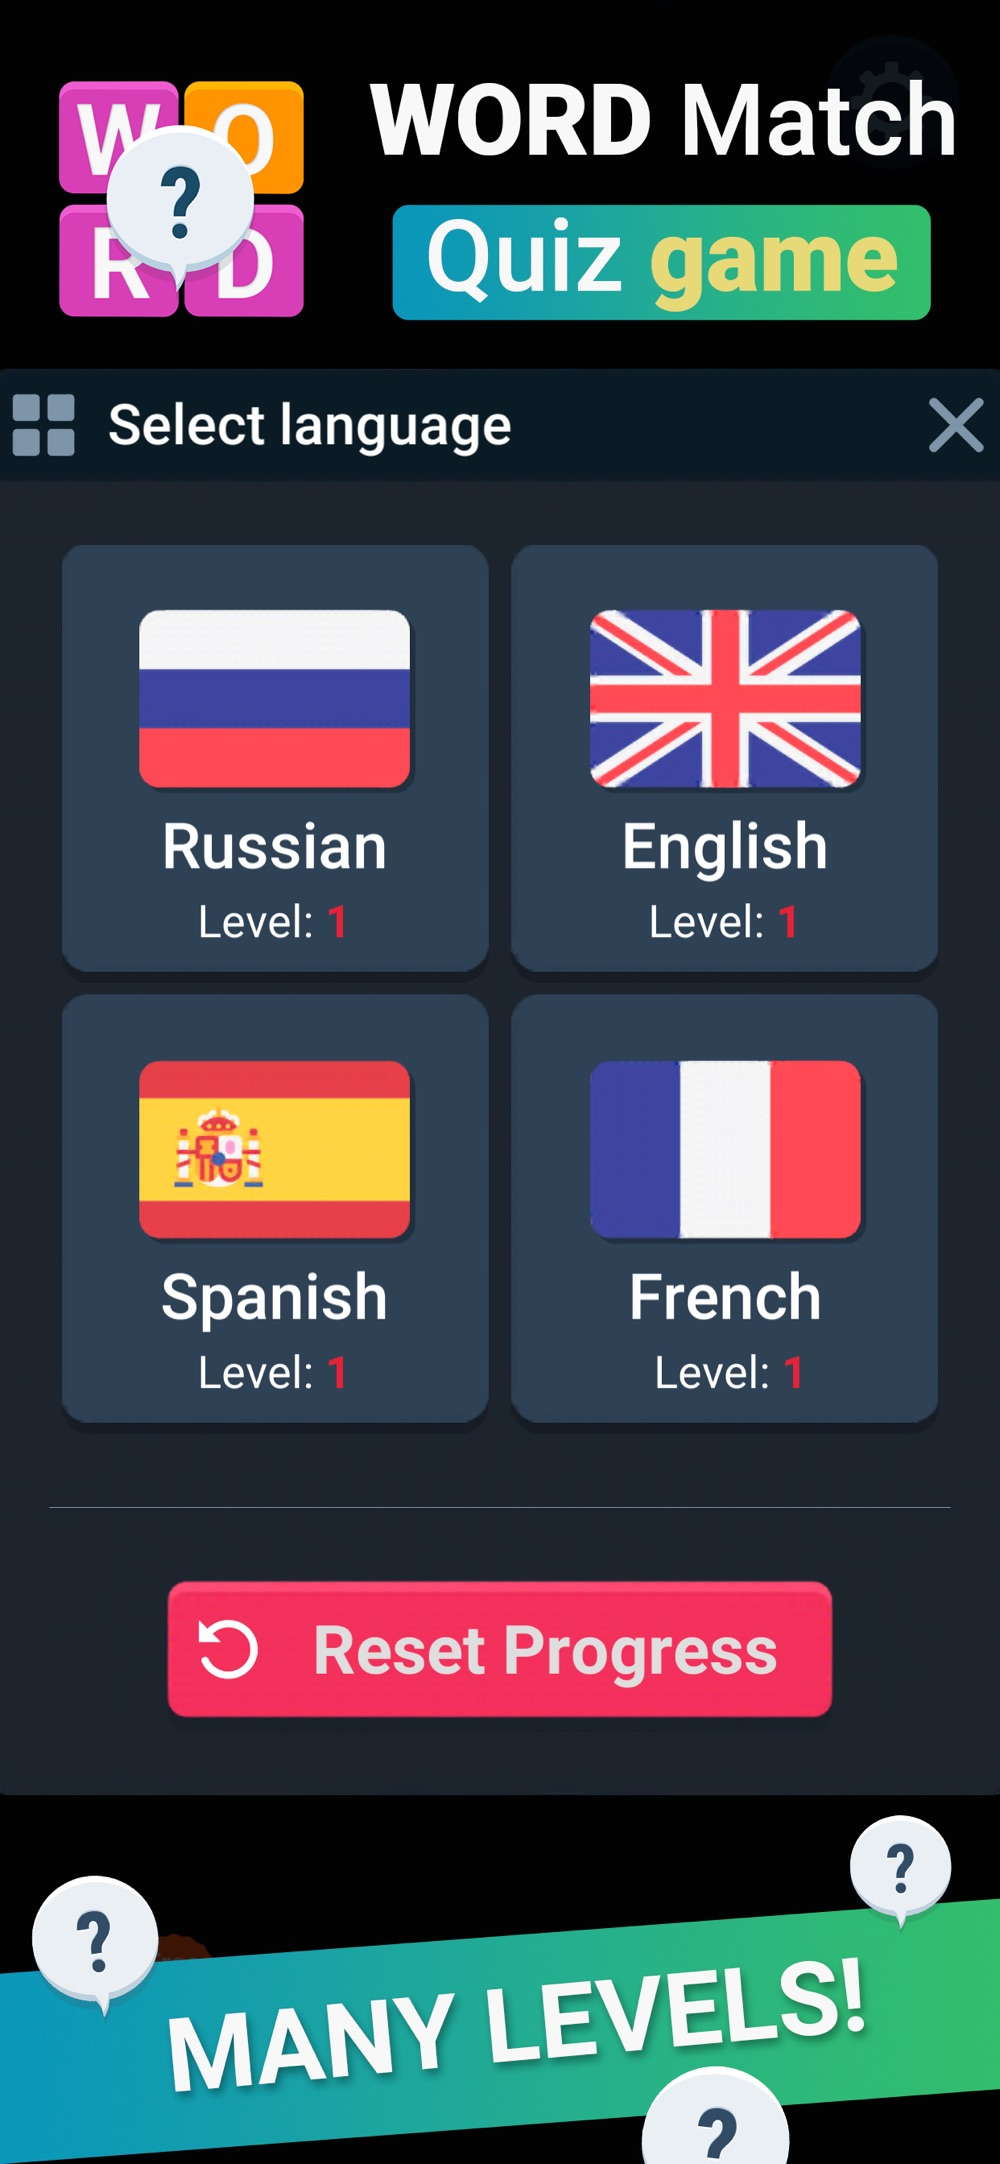 WORD Stack: Search Puzzle Game Cheat Codes